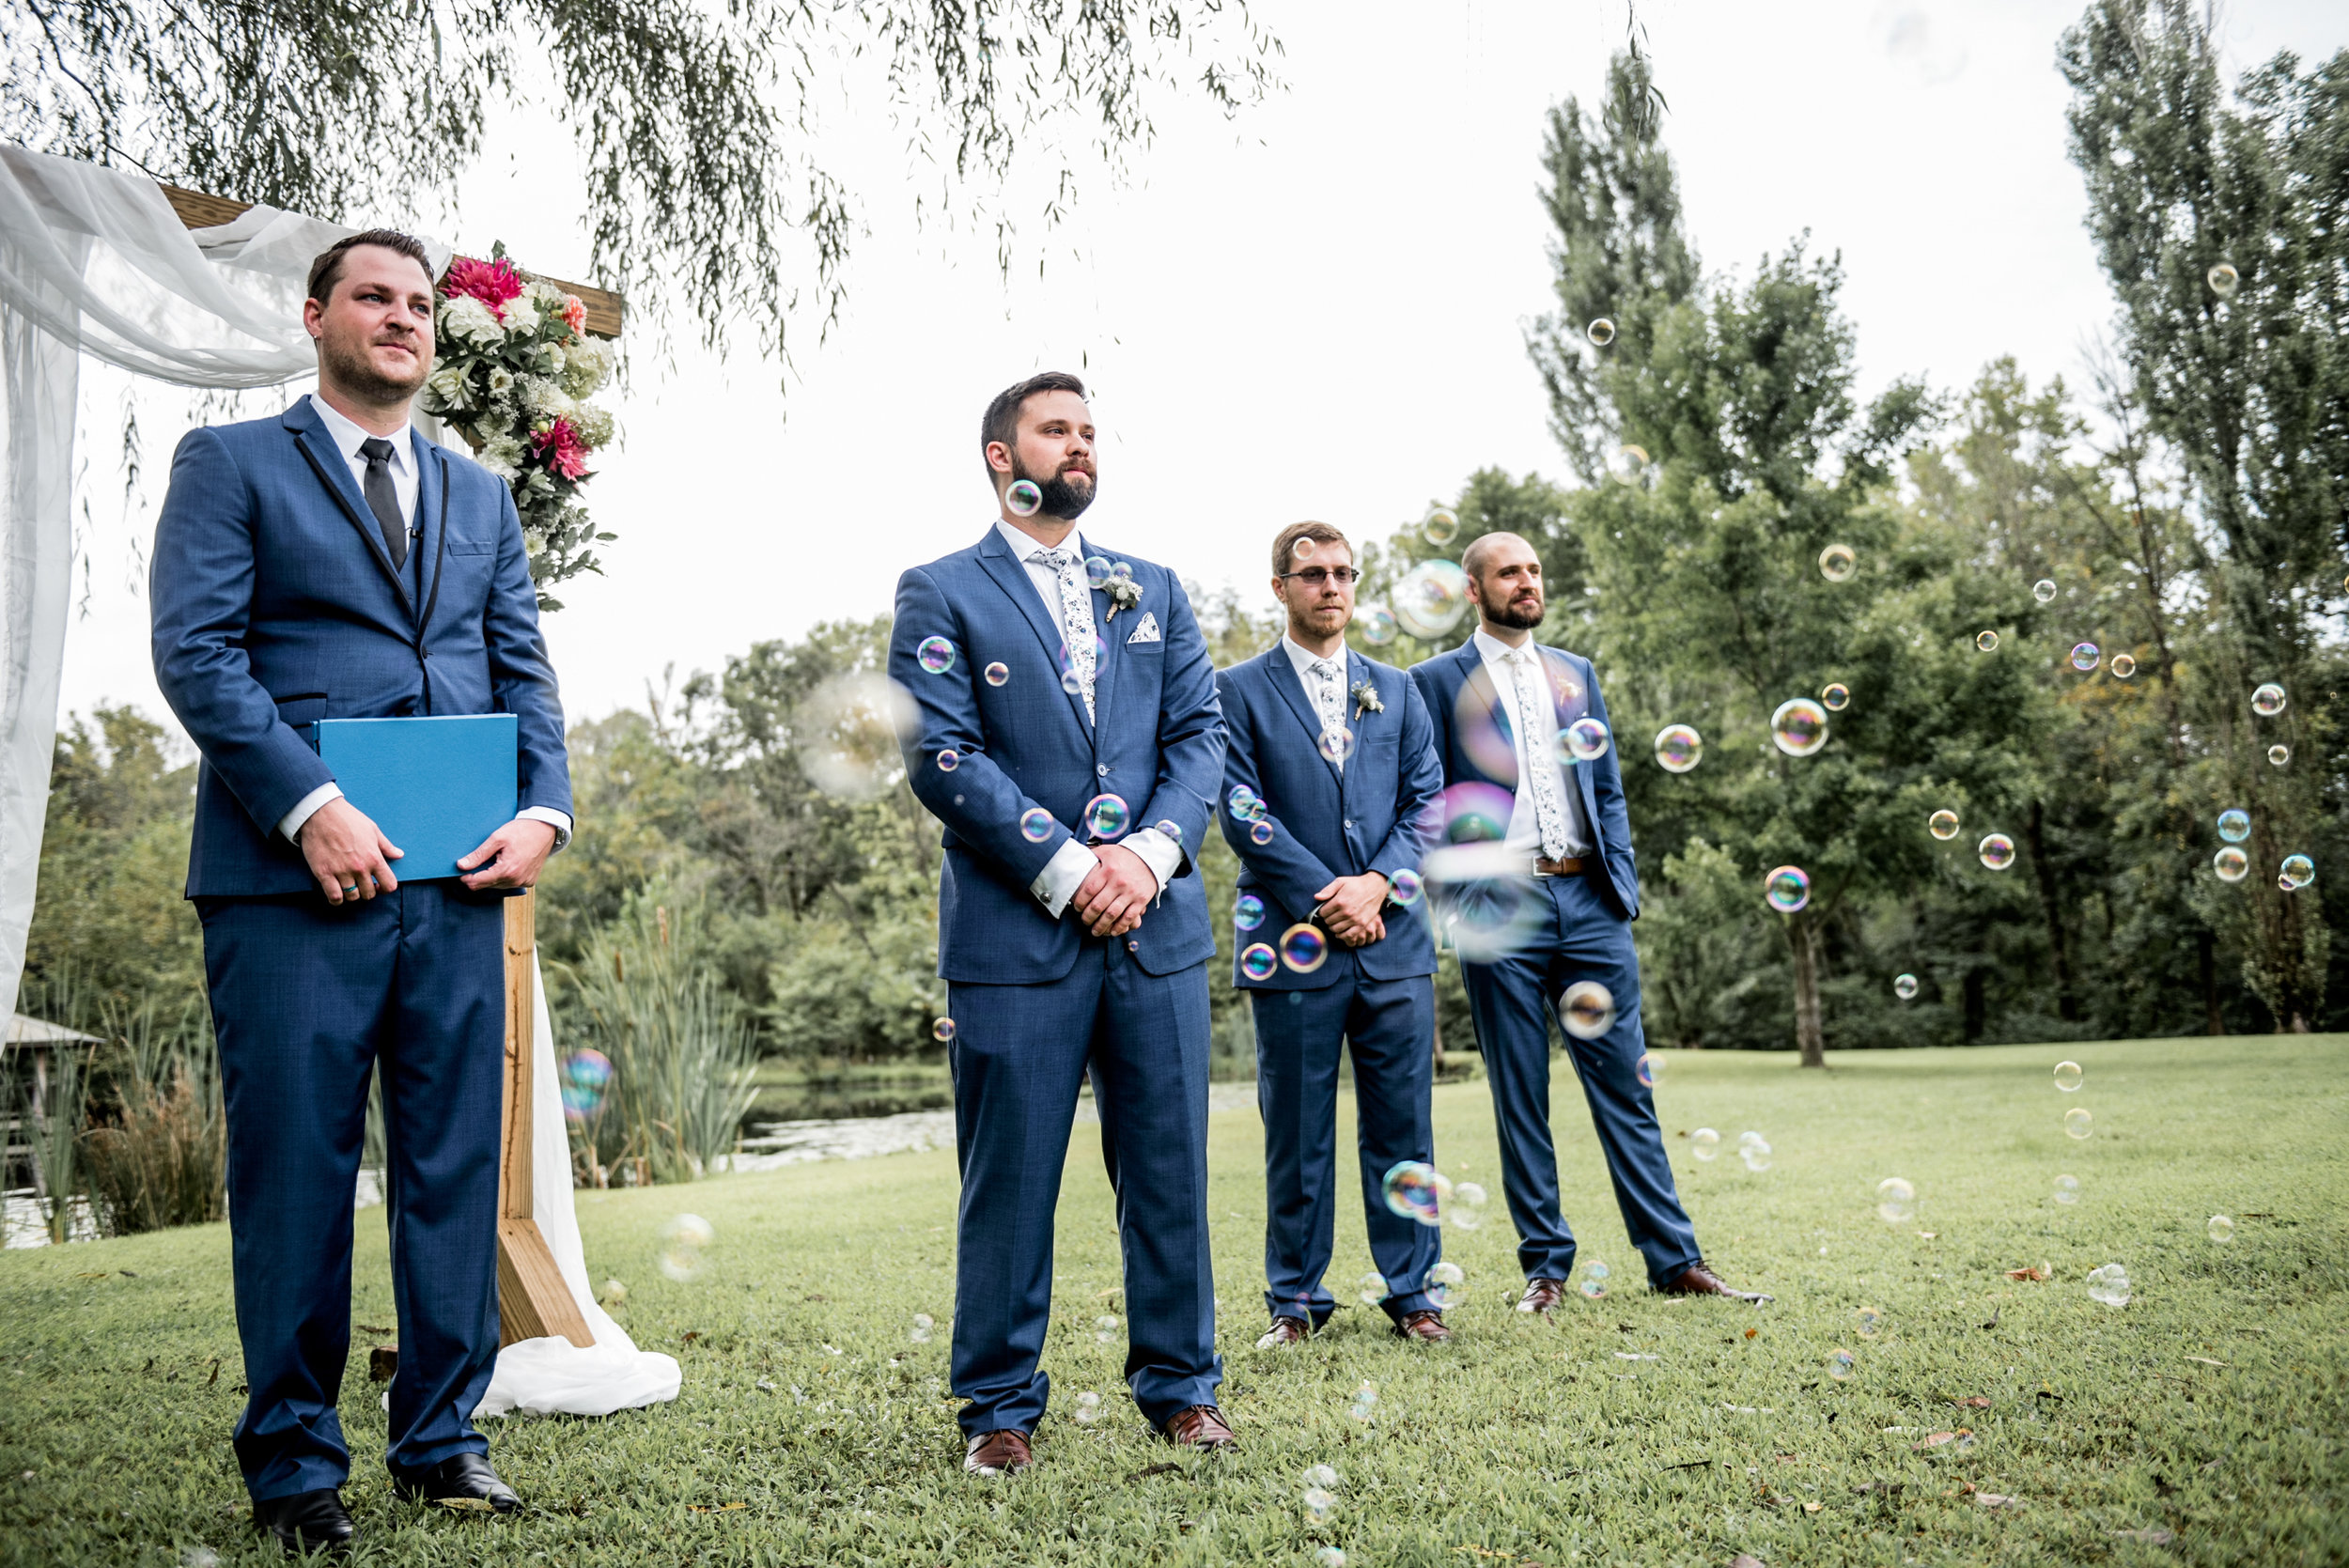 groom watches bride walk down aisle with bubbles